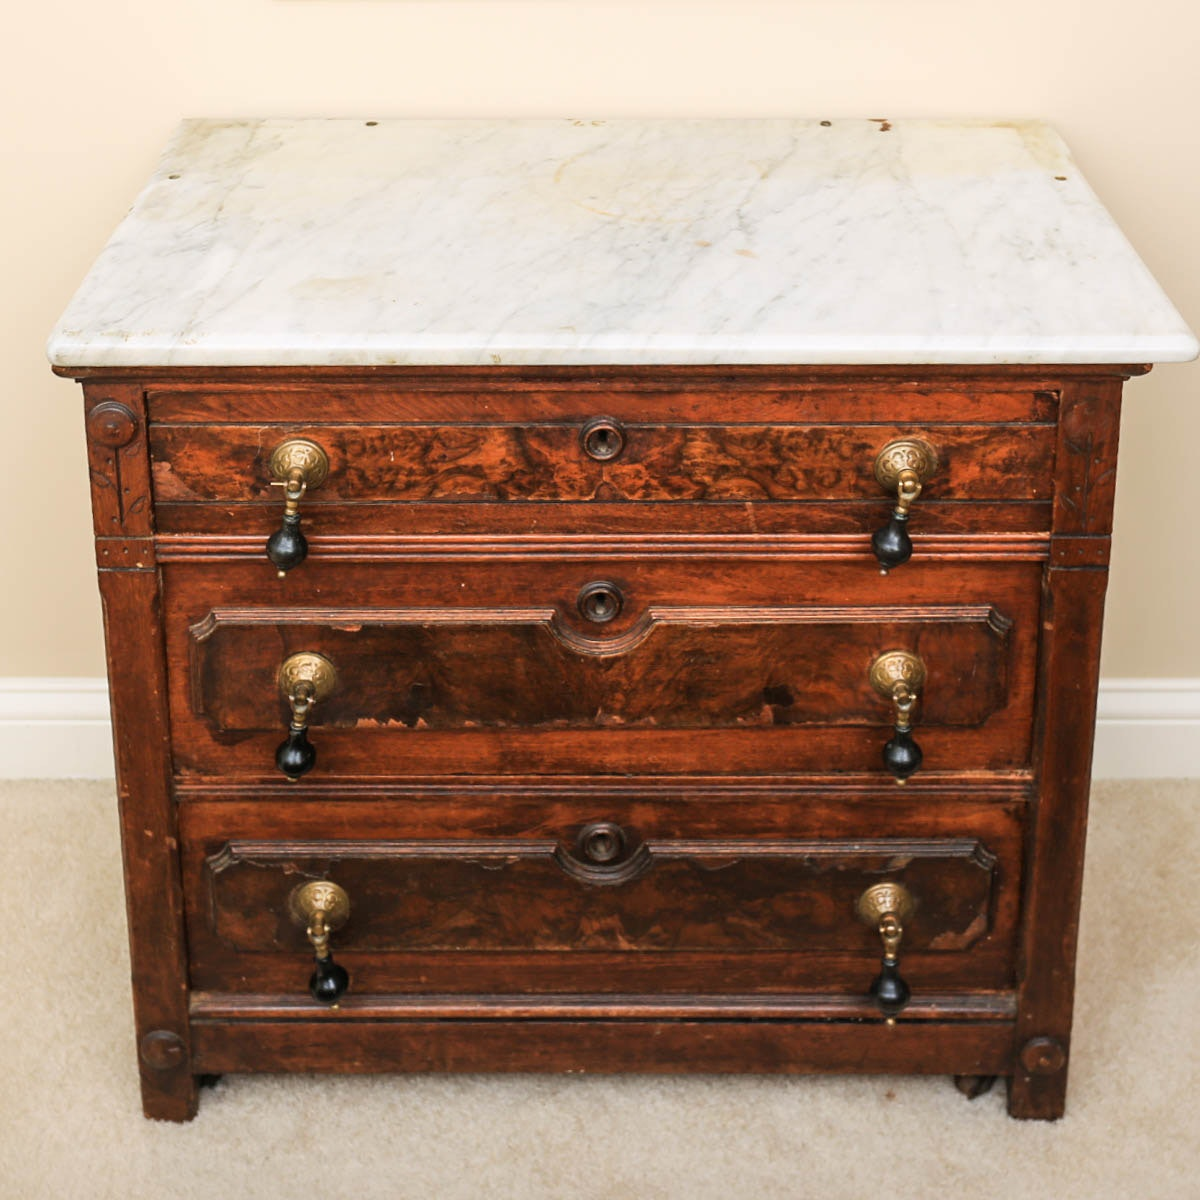 Sumter Cabinet pany Highboy Chest of Drawers EBTH